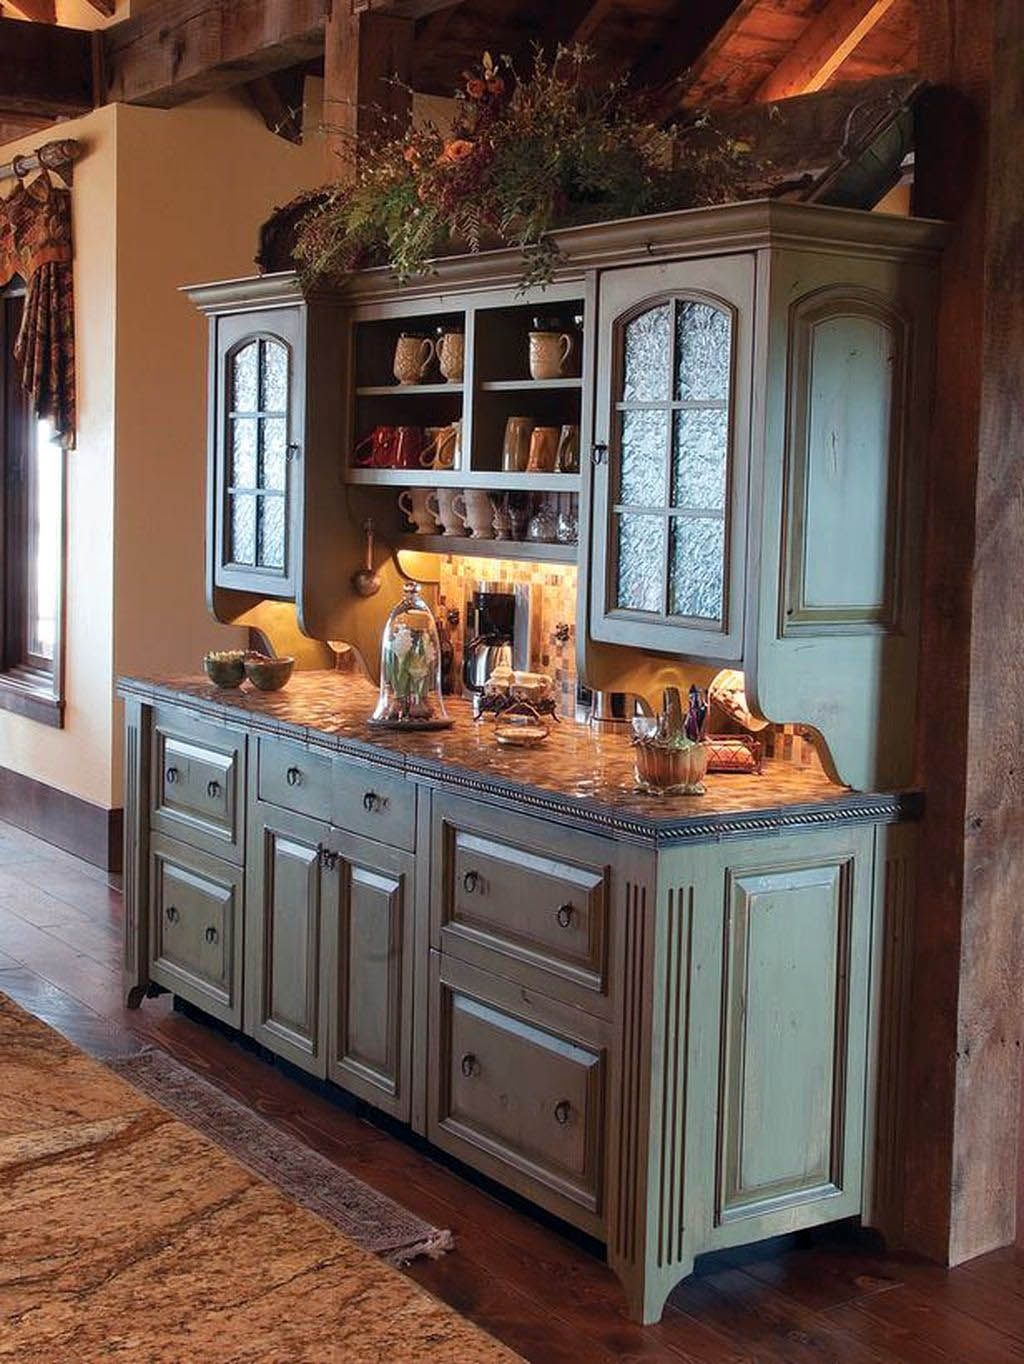 Outstanding Rustic Americana Kitchen Ideas That Will Blow Your Mind Rustic Kitchen Cabinets Rustic Kitchen Kitchen Cabinets Decor